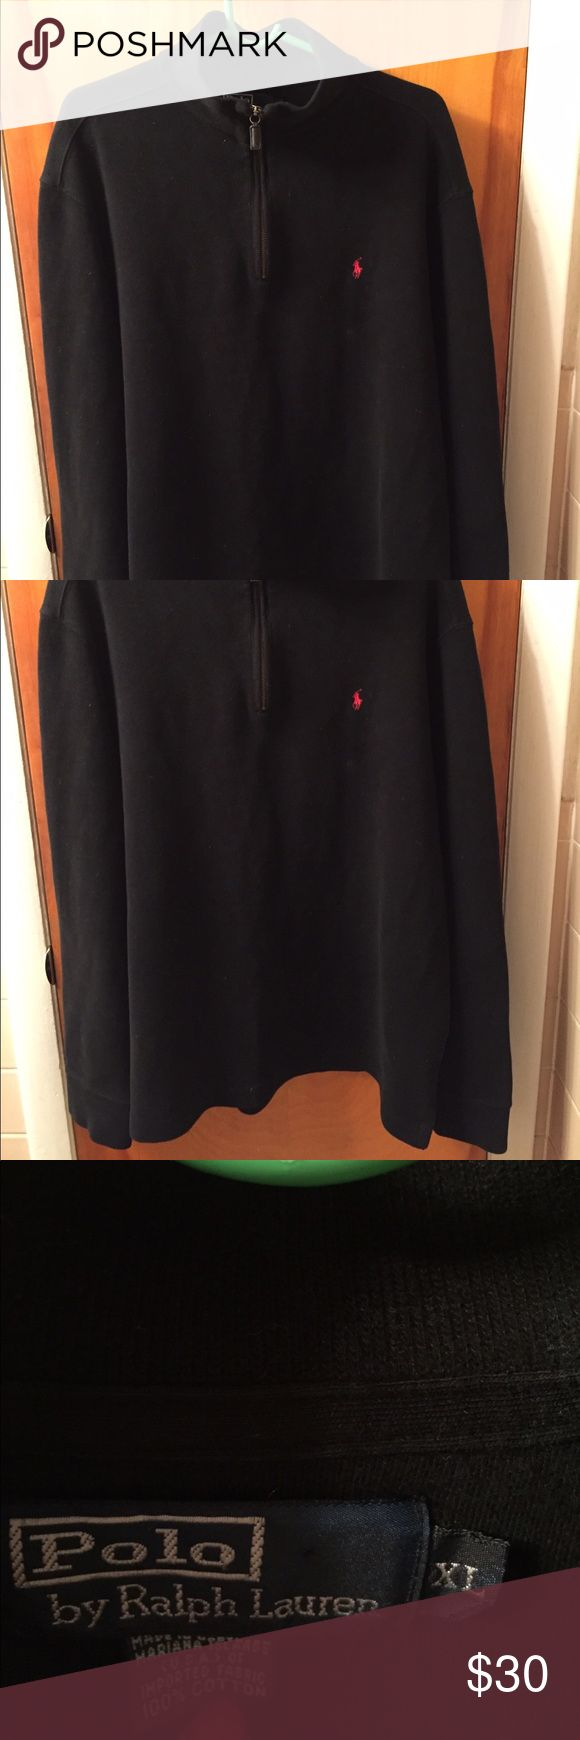 Polo Ralph Lauren black half zip sweater. Sz XL. Black half zip mock neck Ralph Lauren sweater. Men's extra large. Great condition. Only a lint brush to take off bits of material from being stored, but minimal. Polo by Ralph Lauren Sweaters Zip Up